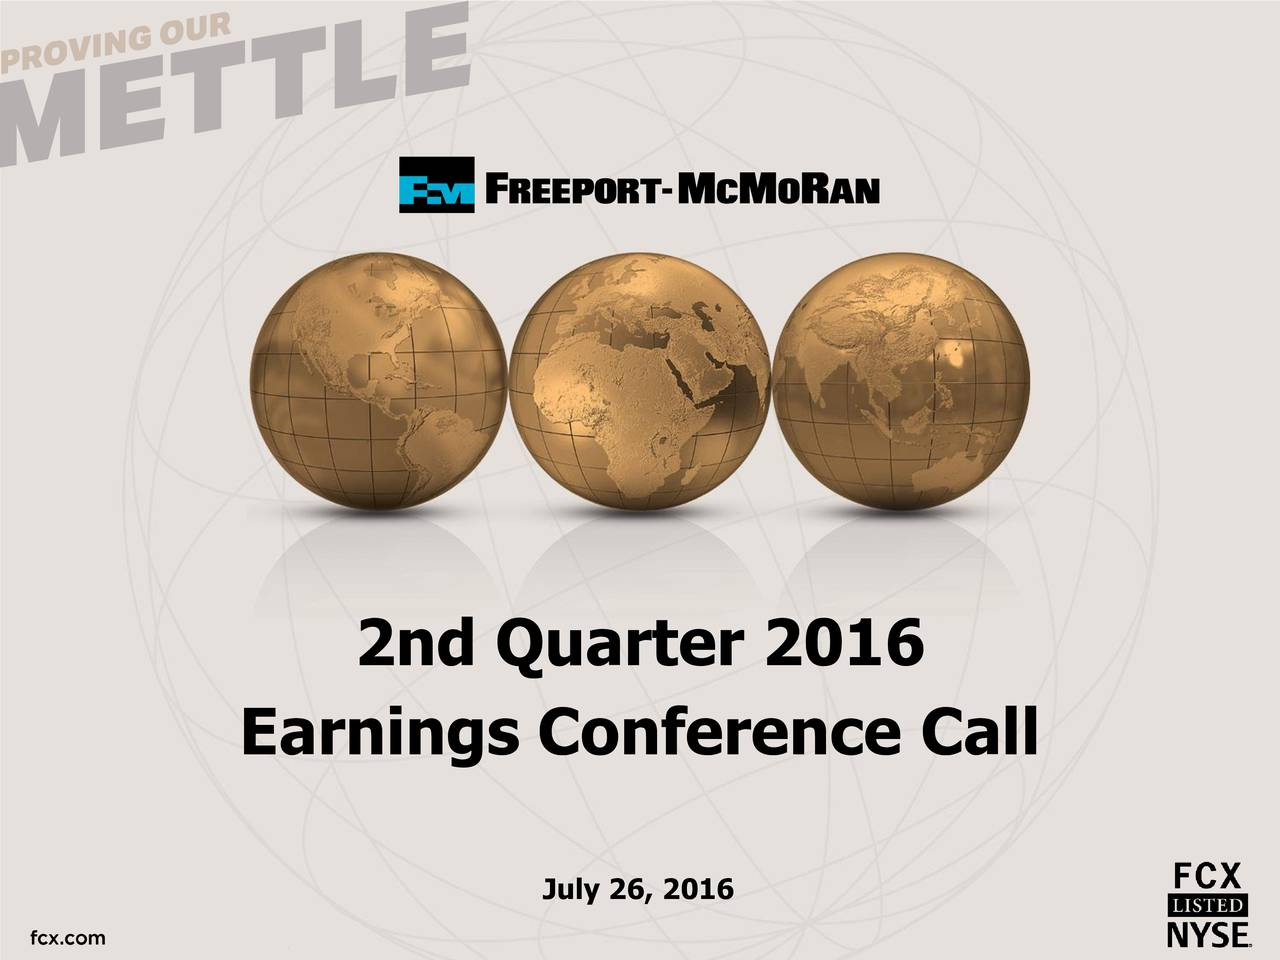 Earnings Conference Call July 26, 2016